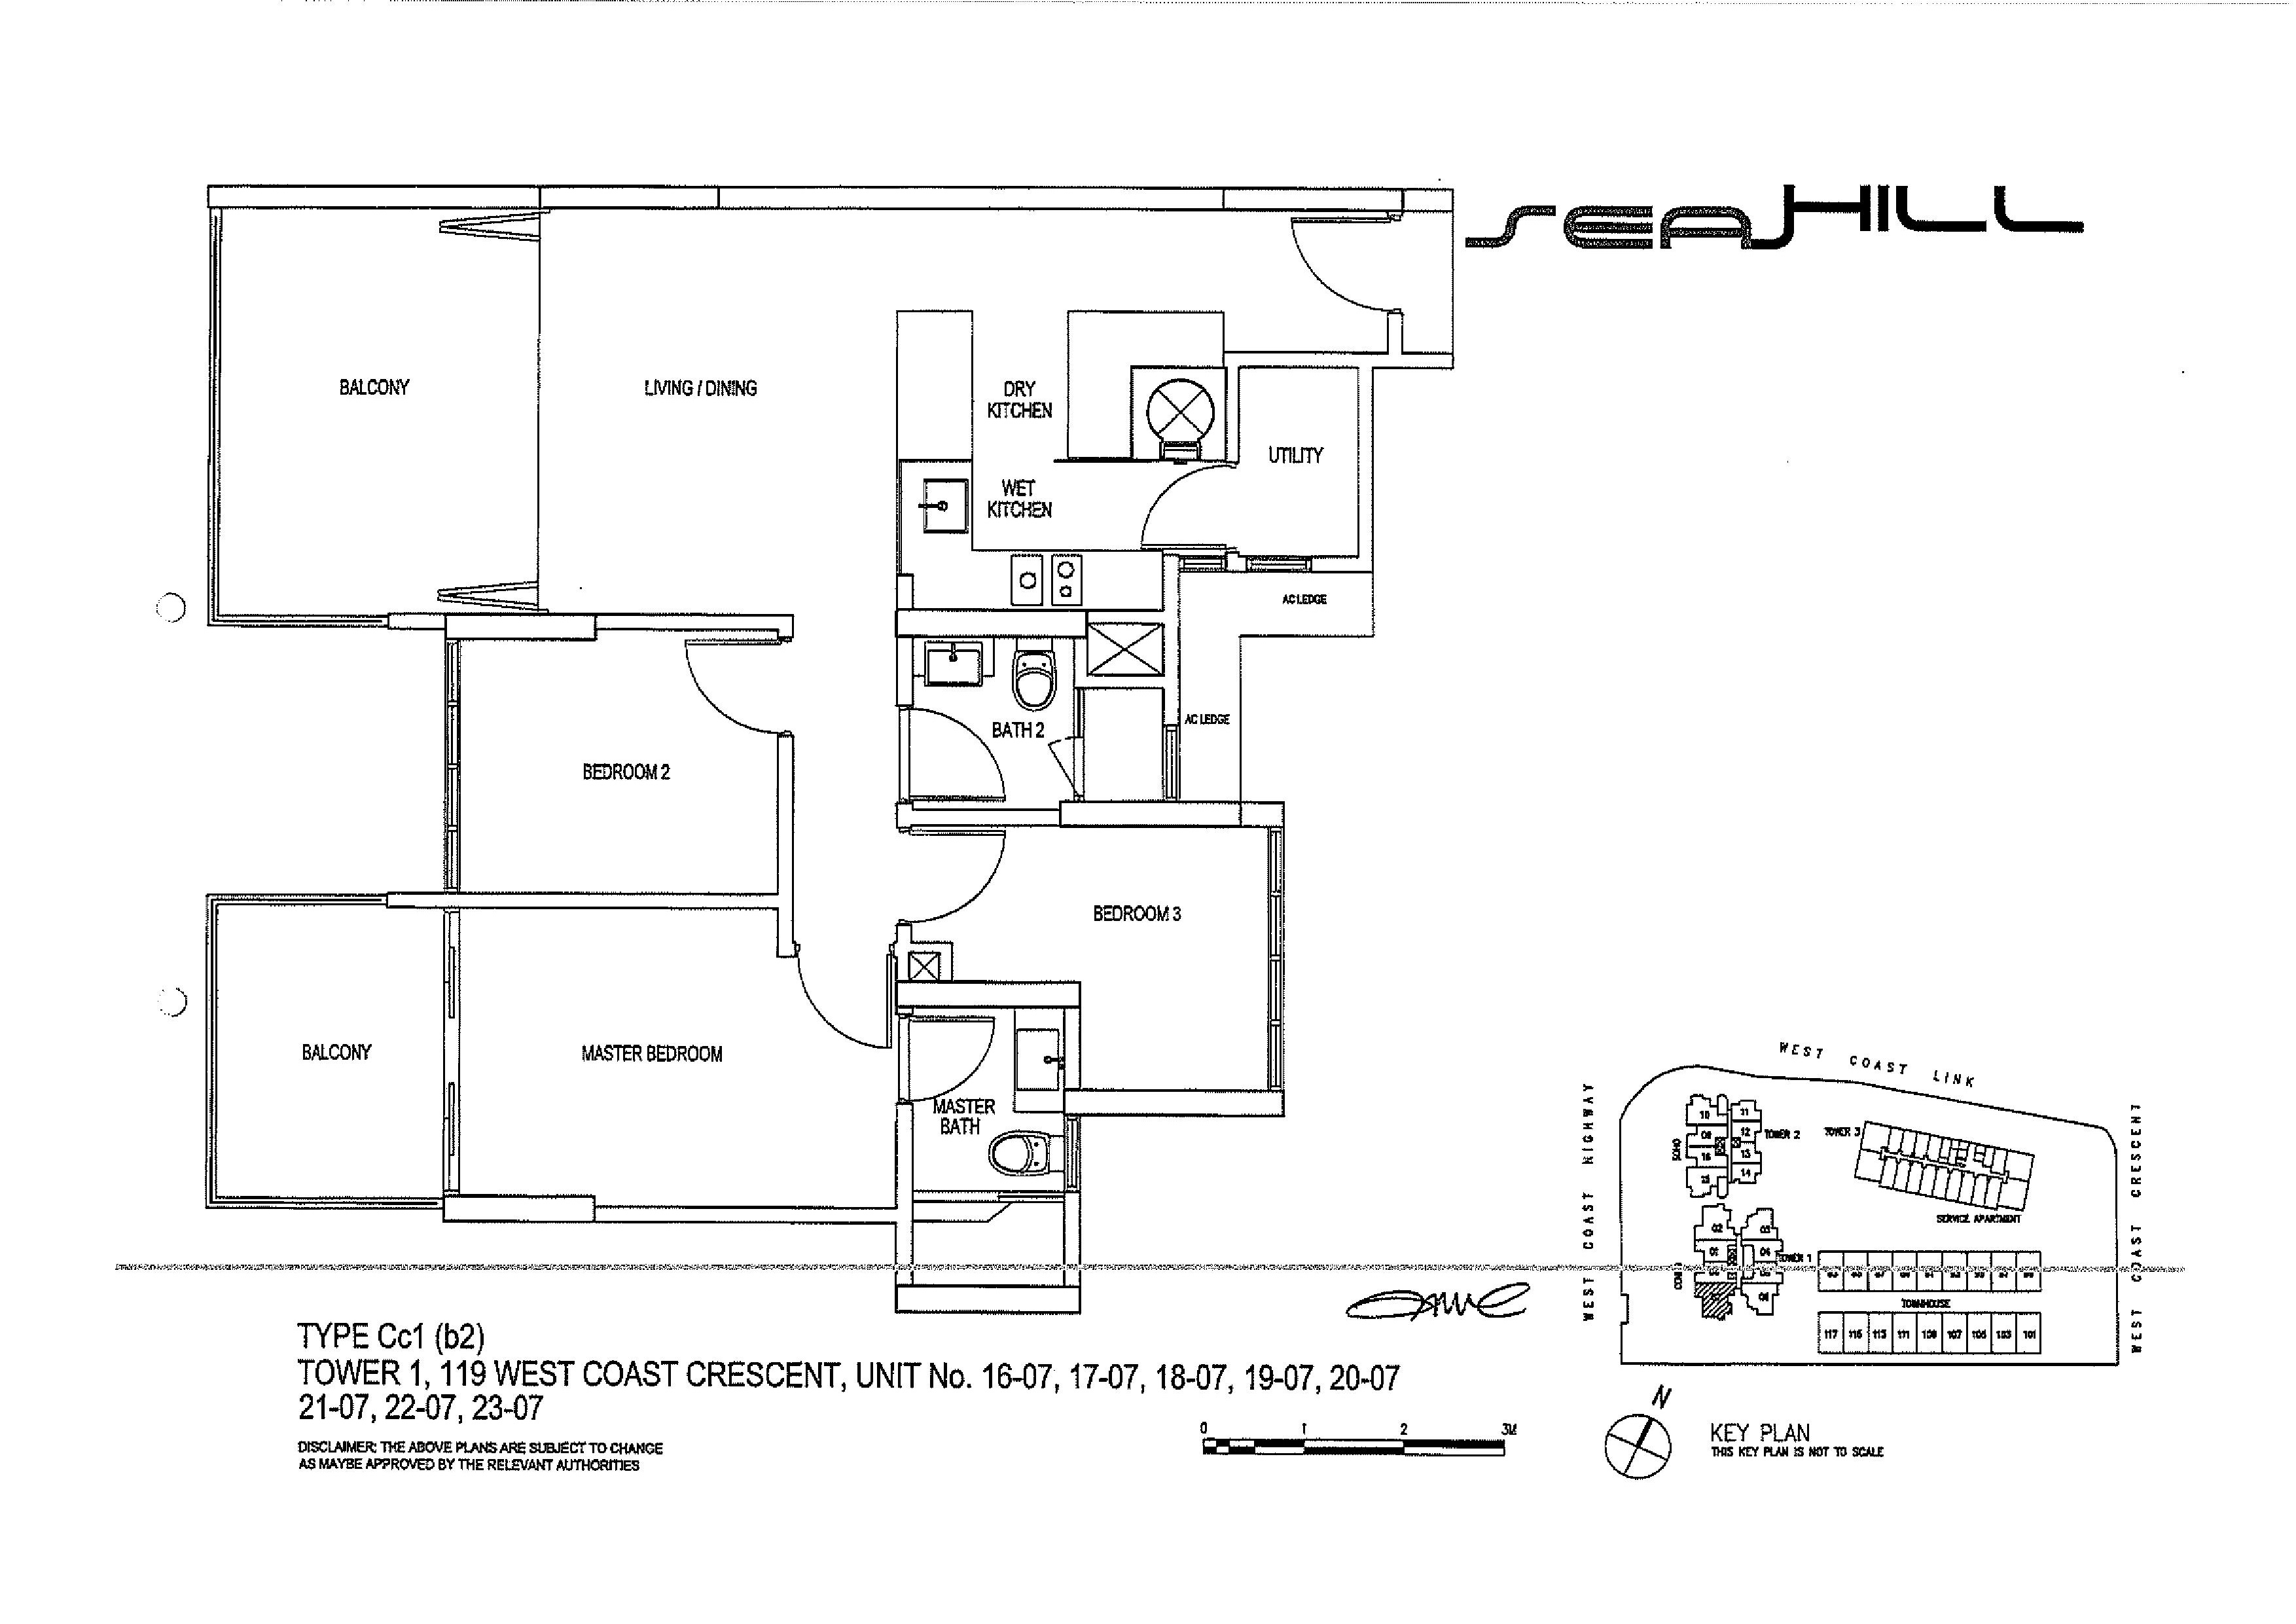 Seahill 3 Bedroom Condo Type Cc1(b2) Unit 16-07 to 23-07 Floor Plans